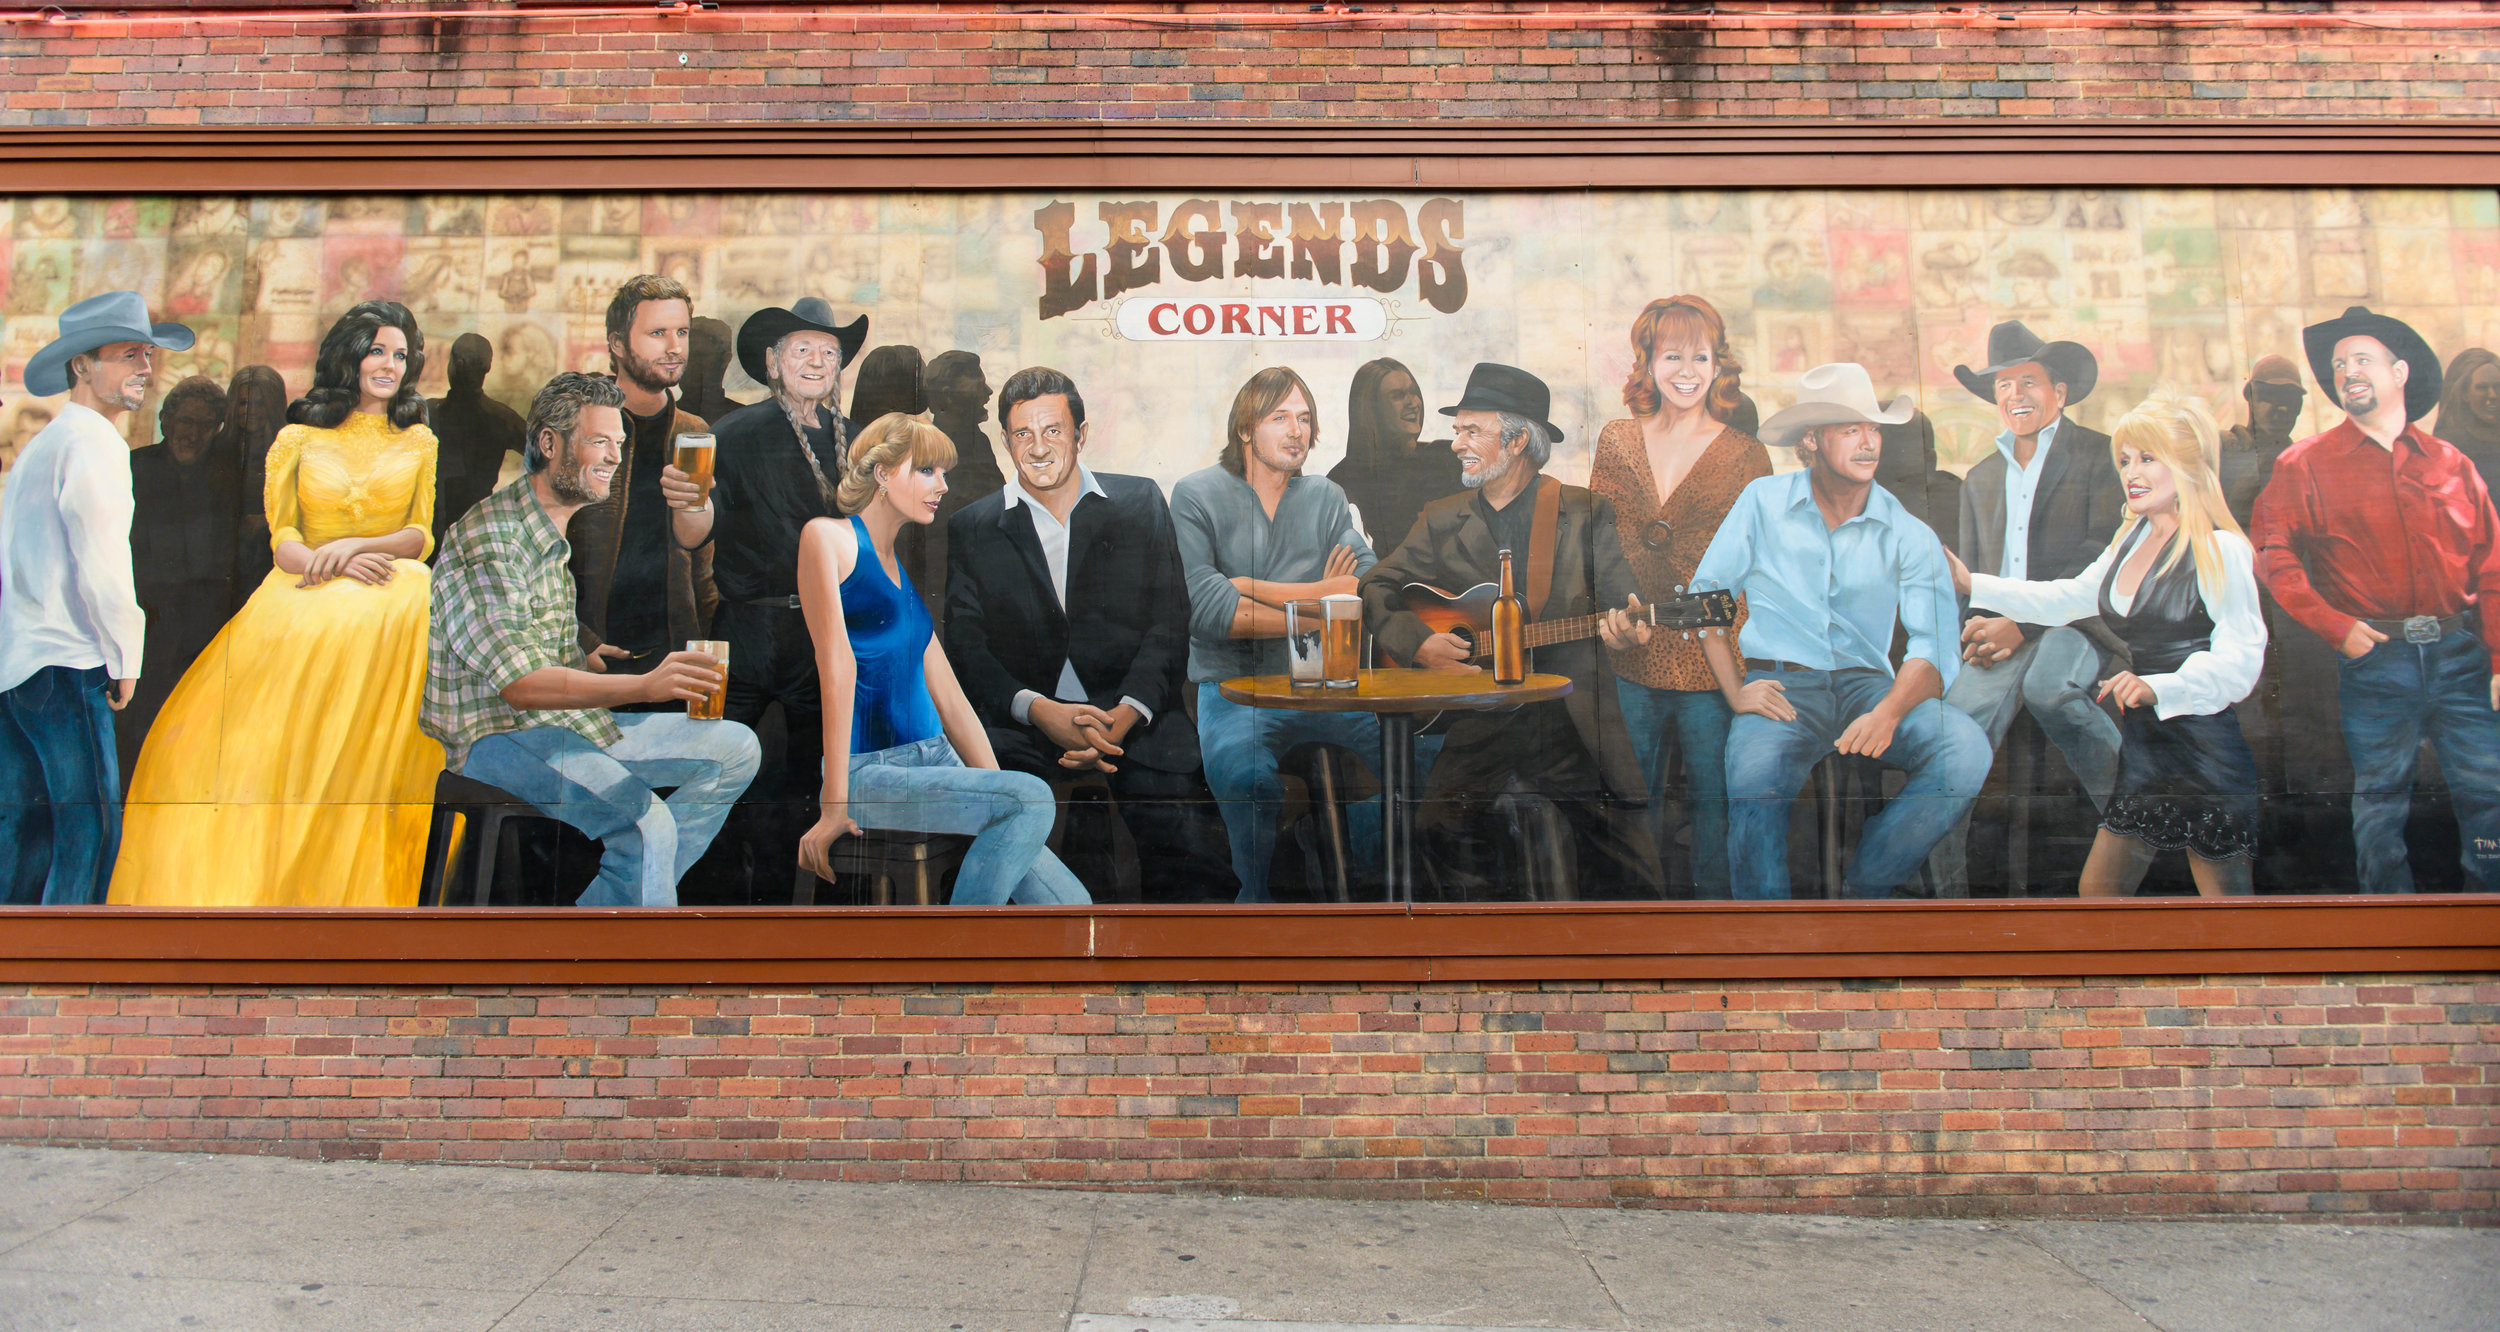 Get your photo with some of the country music greats (minus T-Swift, not sure she deserves to be in the company of some of these legends)